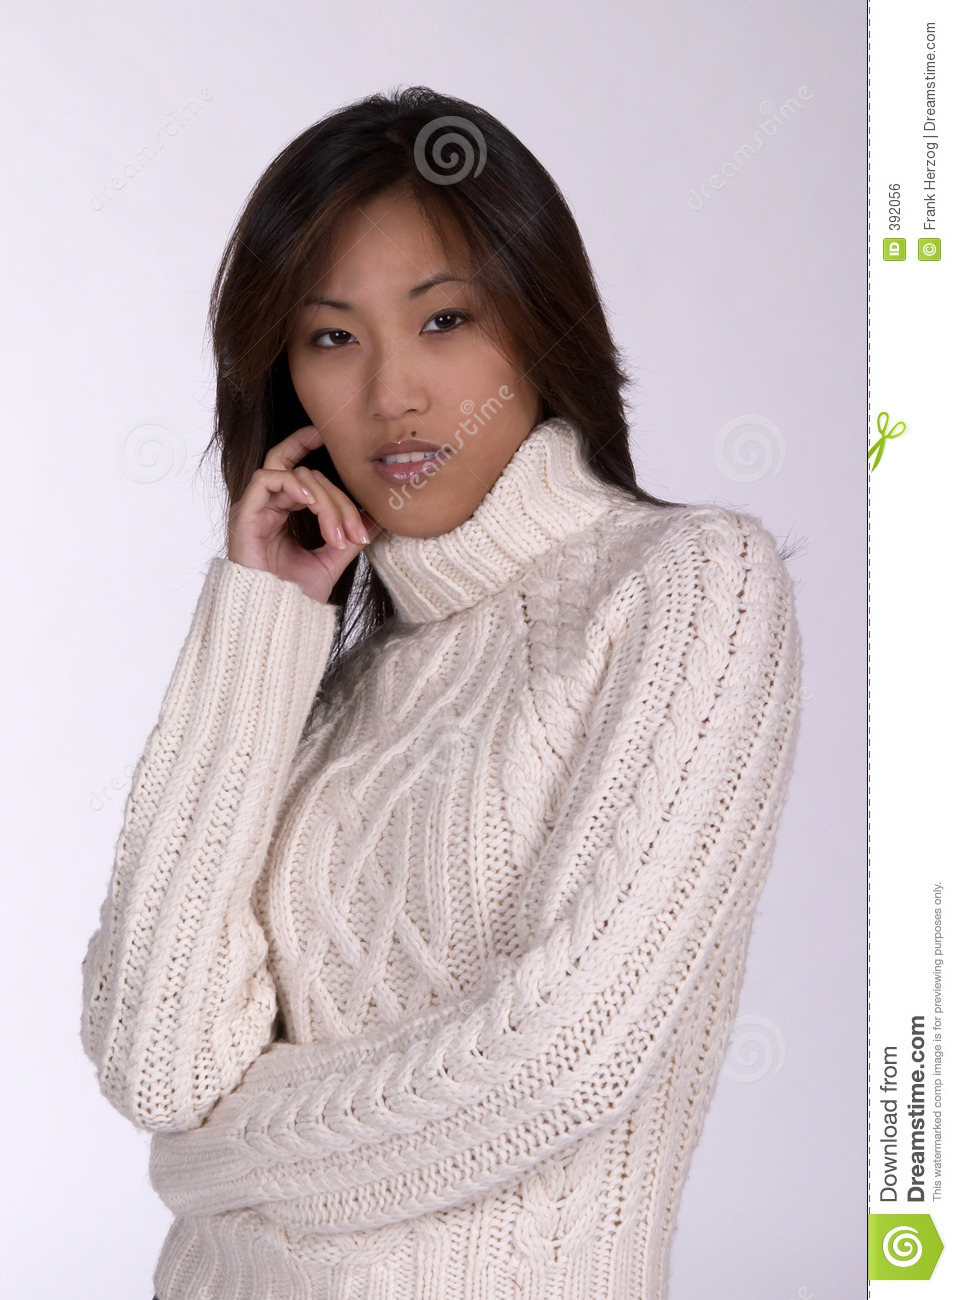 Asin woman in winter sweater